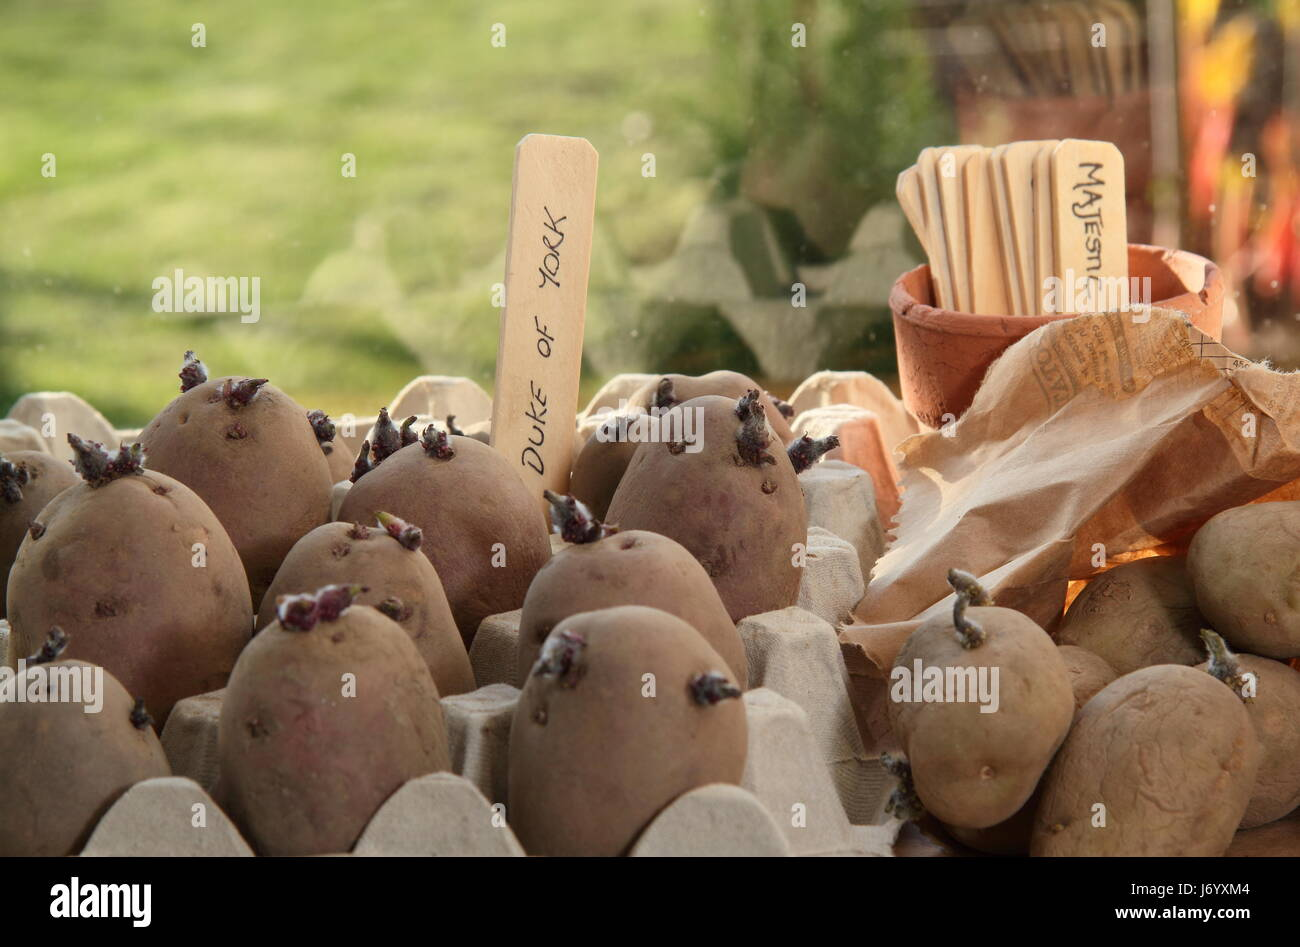 Seed potatoes chitting in egg box containers indoors on bright, warm window sill to  encourage strong shoots before - Stock Image